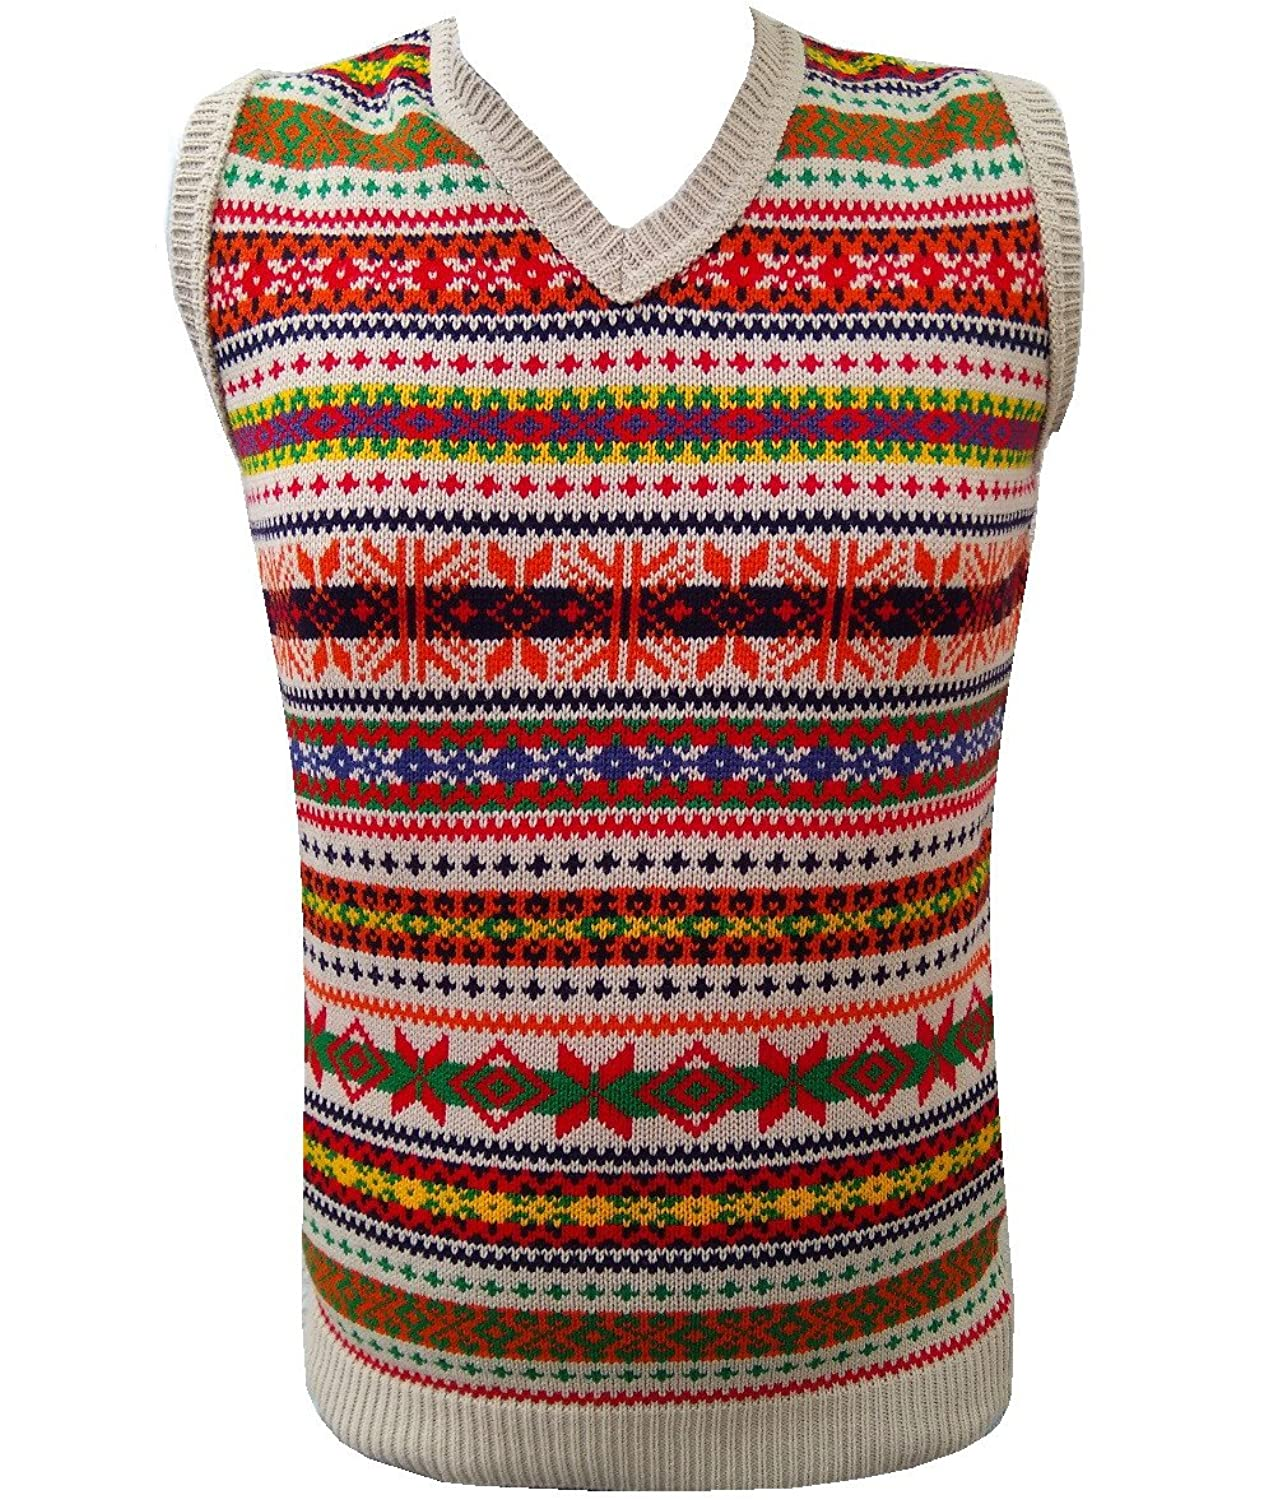 1920s Style Mens Vests London Knitwear Gallery Retro Vintage Knitwear Tanktop Sleeveless Golf Sweater £19.99 AT vintagedancer.com